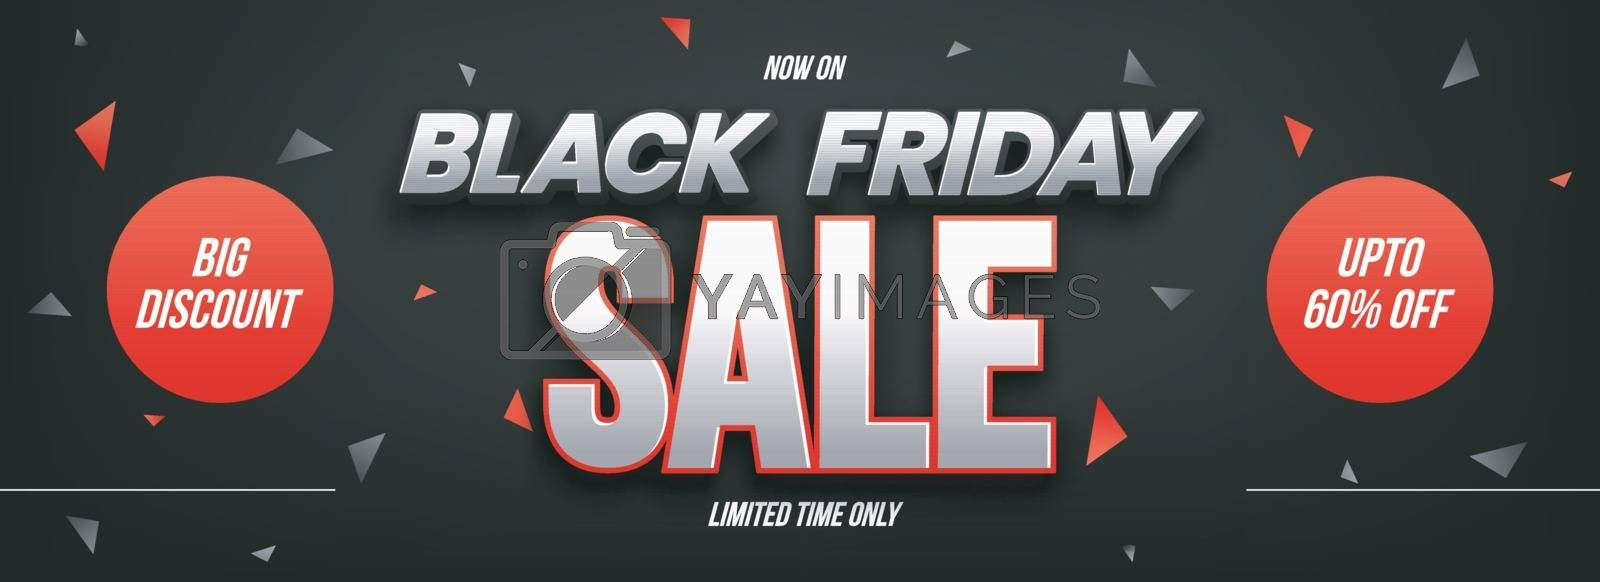 Website header or banner design lettering Black Friday Sale and 60% discount offer on abstract black background.